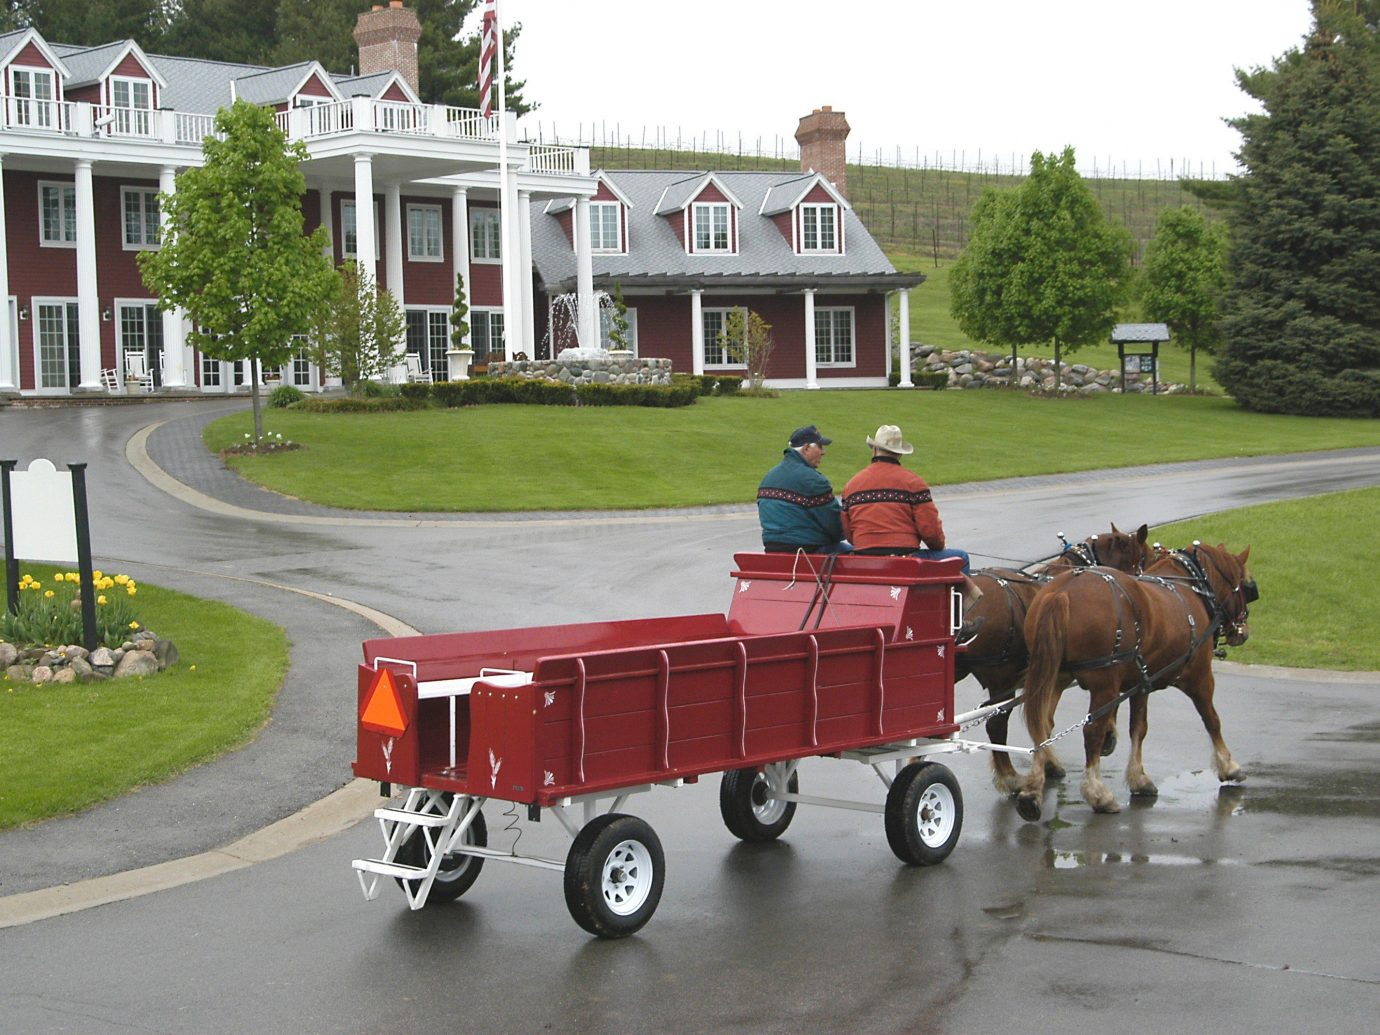 Hotels road outdoor grass sky pulling carriage transport drawn horse and buggy vehicle street red cart horse like mammal Farm horse-drawn vehicle pulled